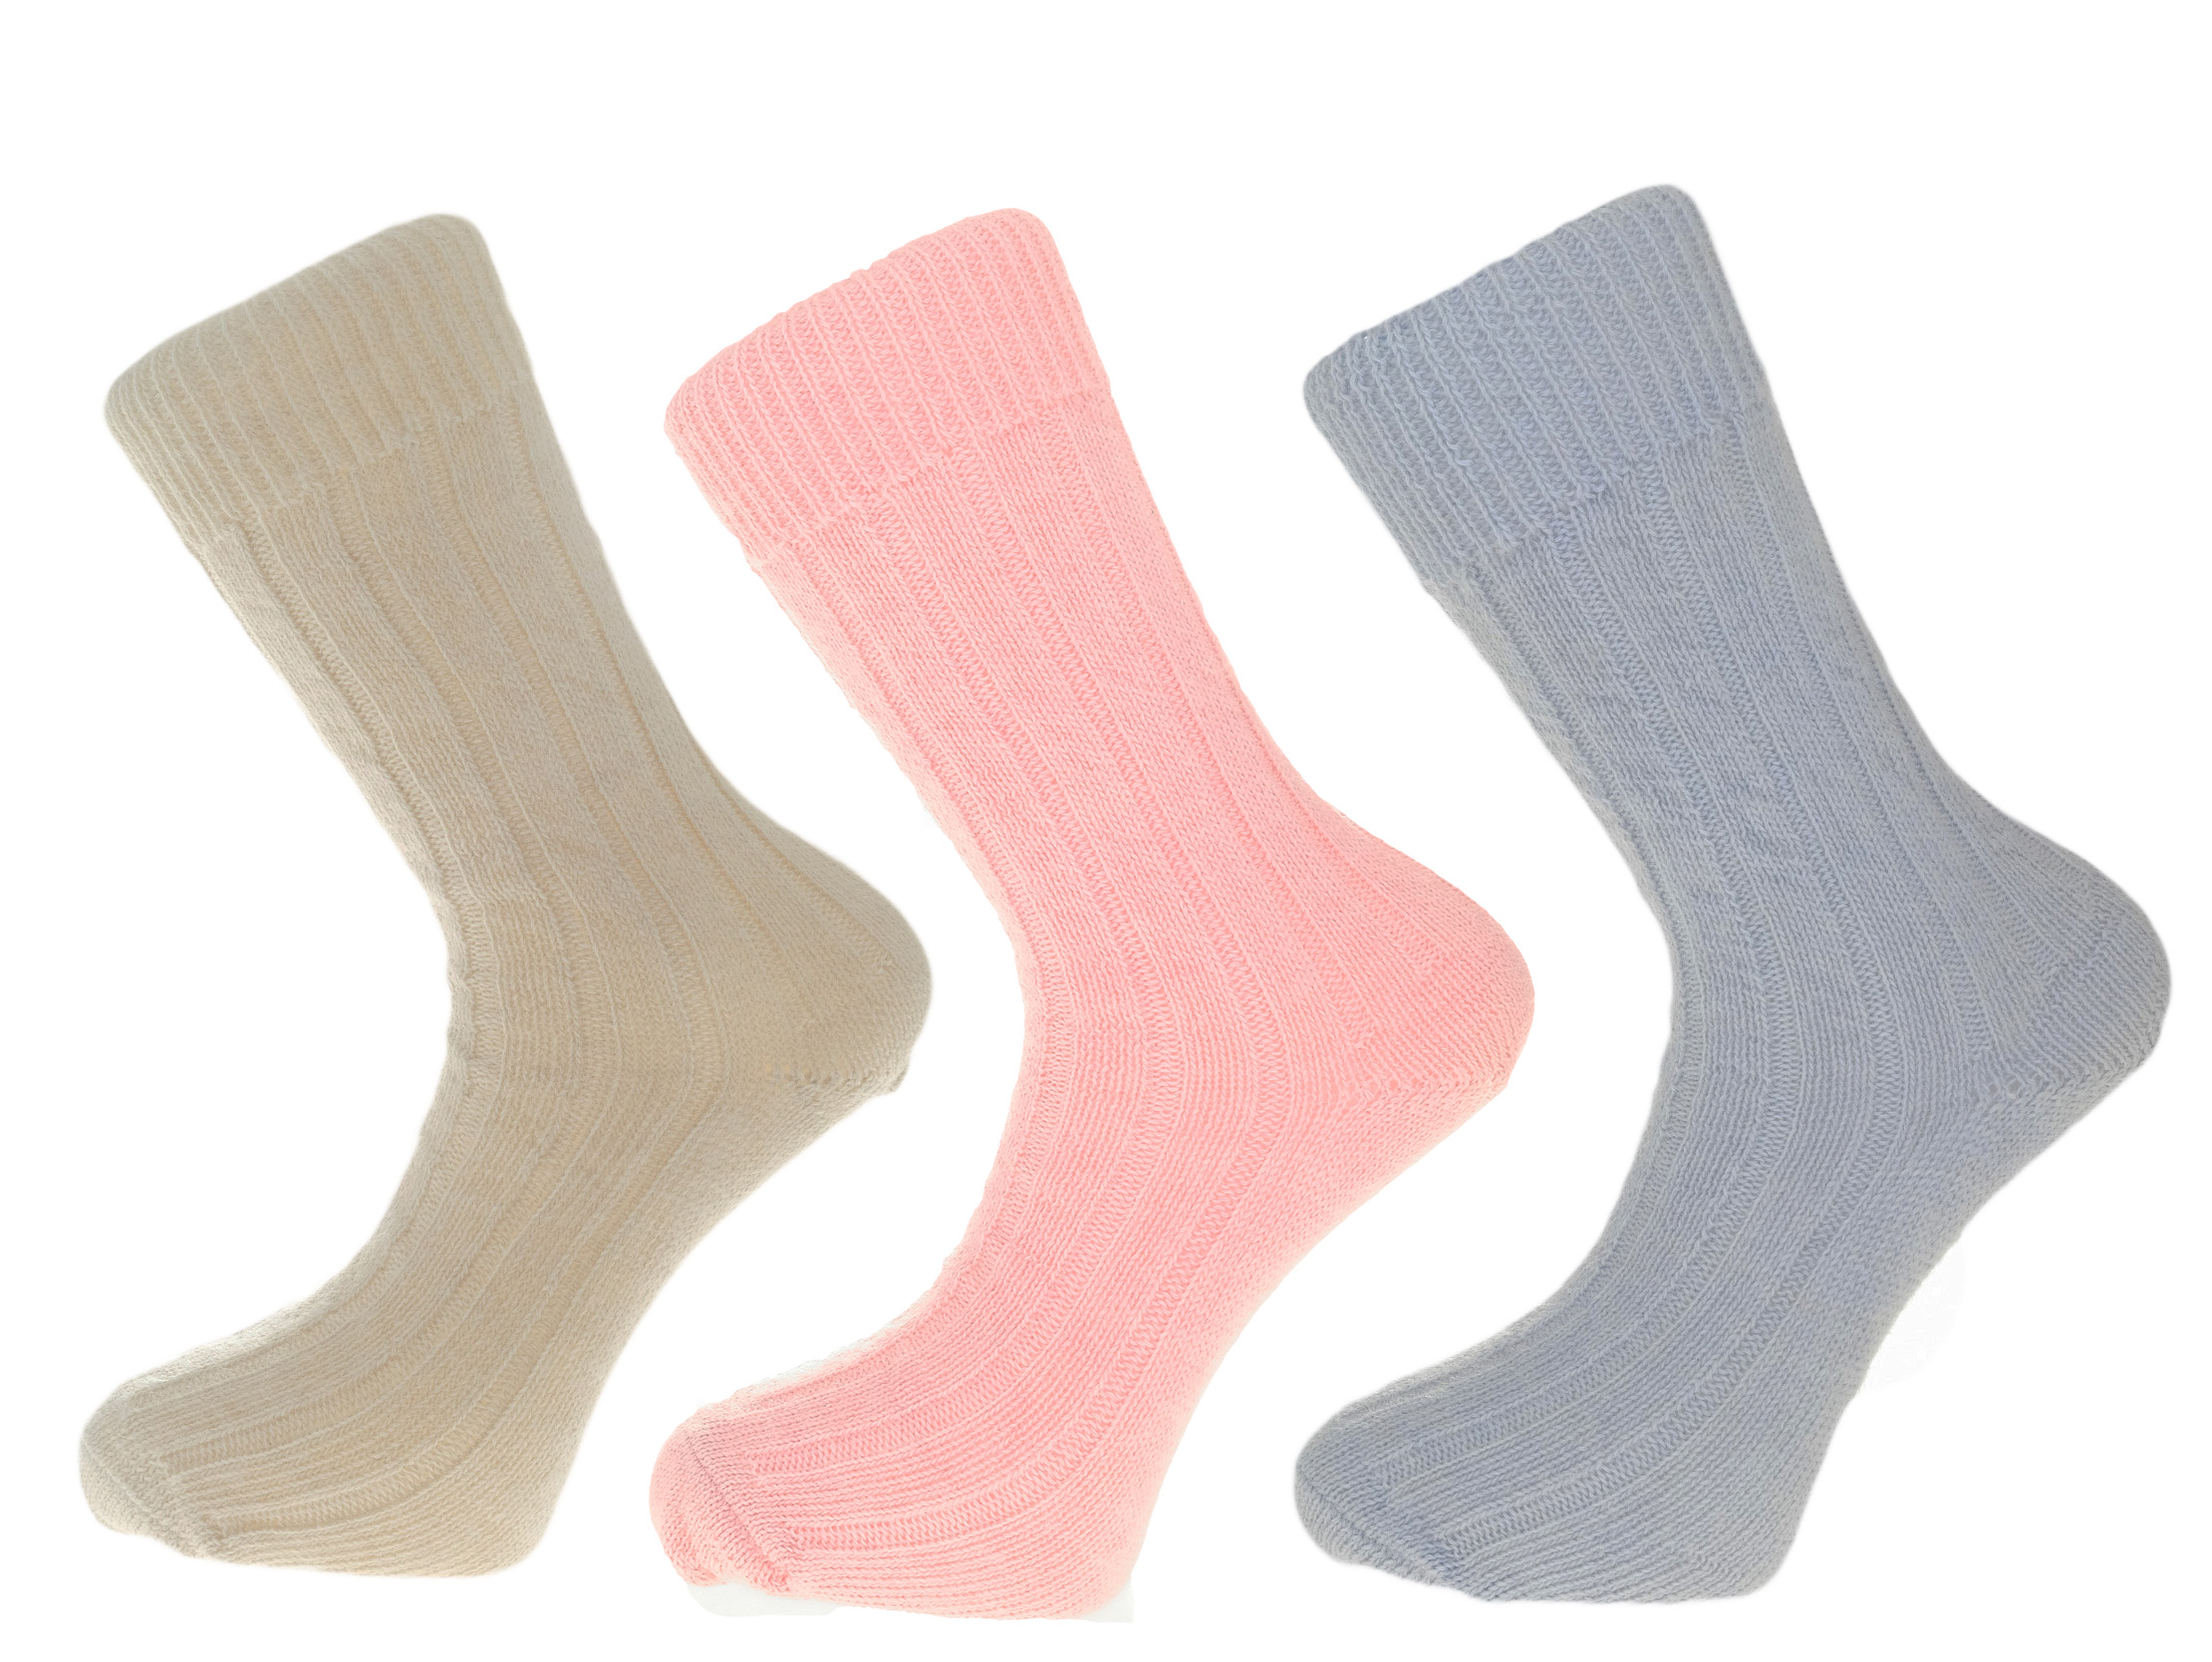 3 Pairs of Alpaca Bed Socks Warm and Soft, 90% Alpaca Wool. Alpaca Sock<br><br>Gift Idea I